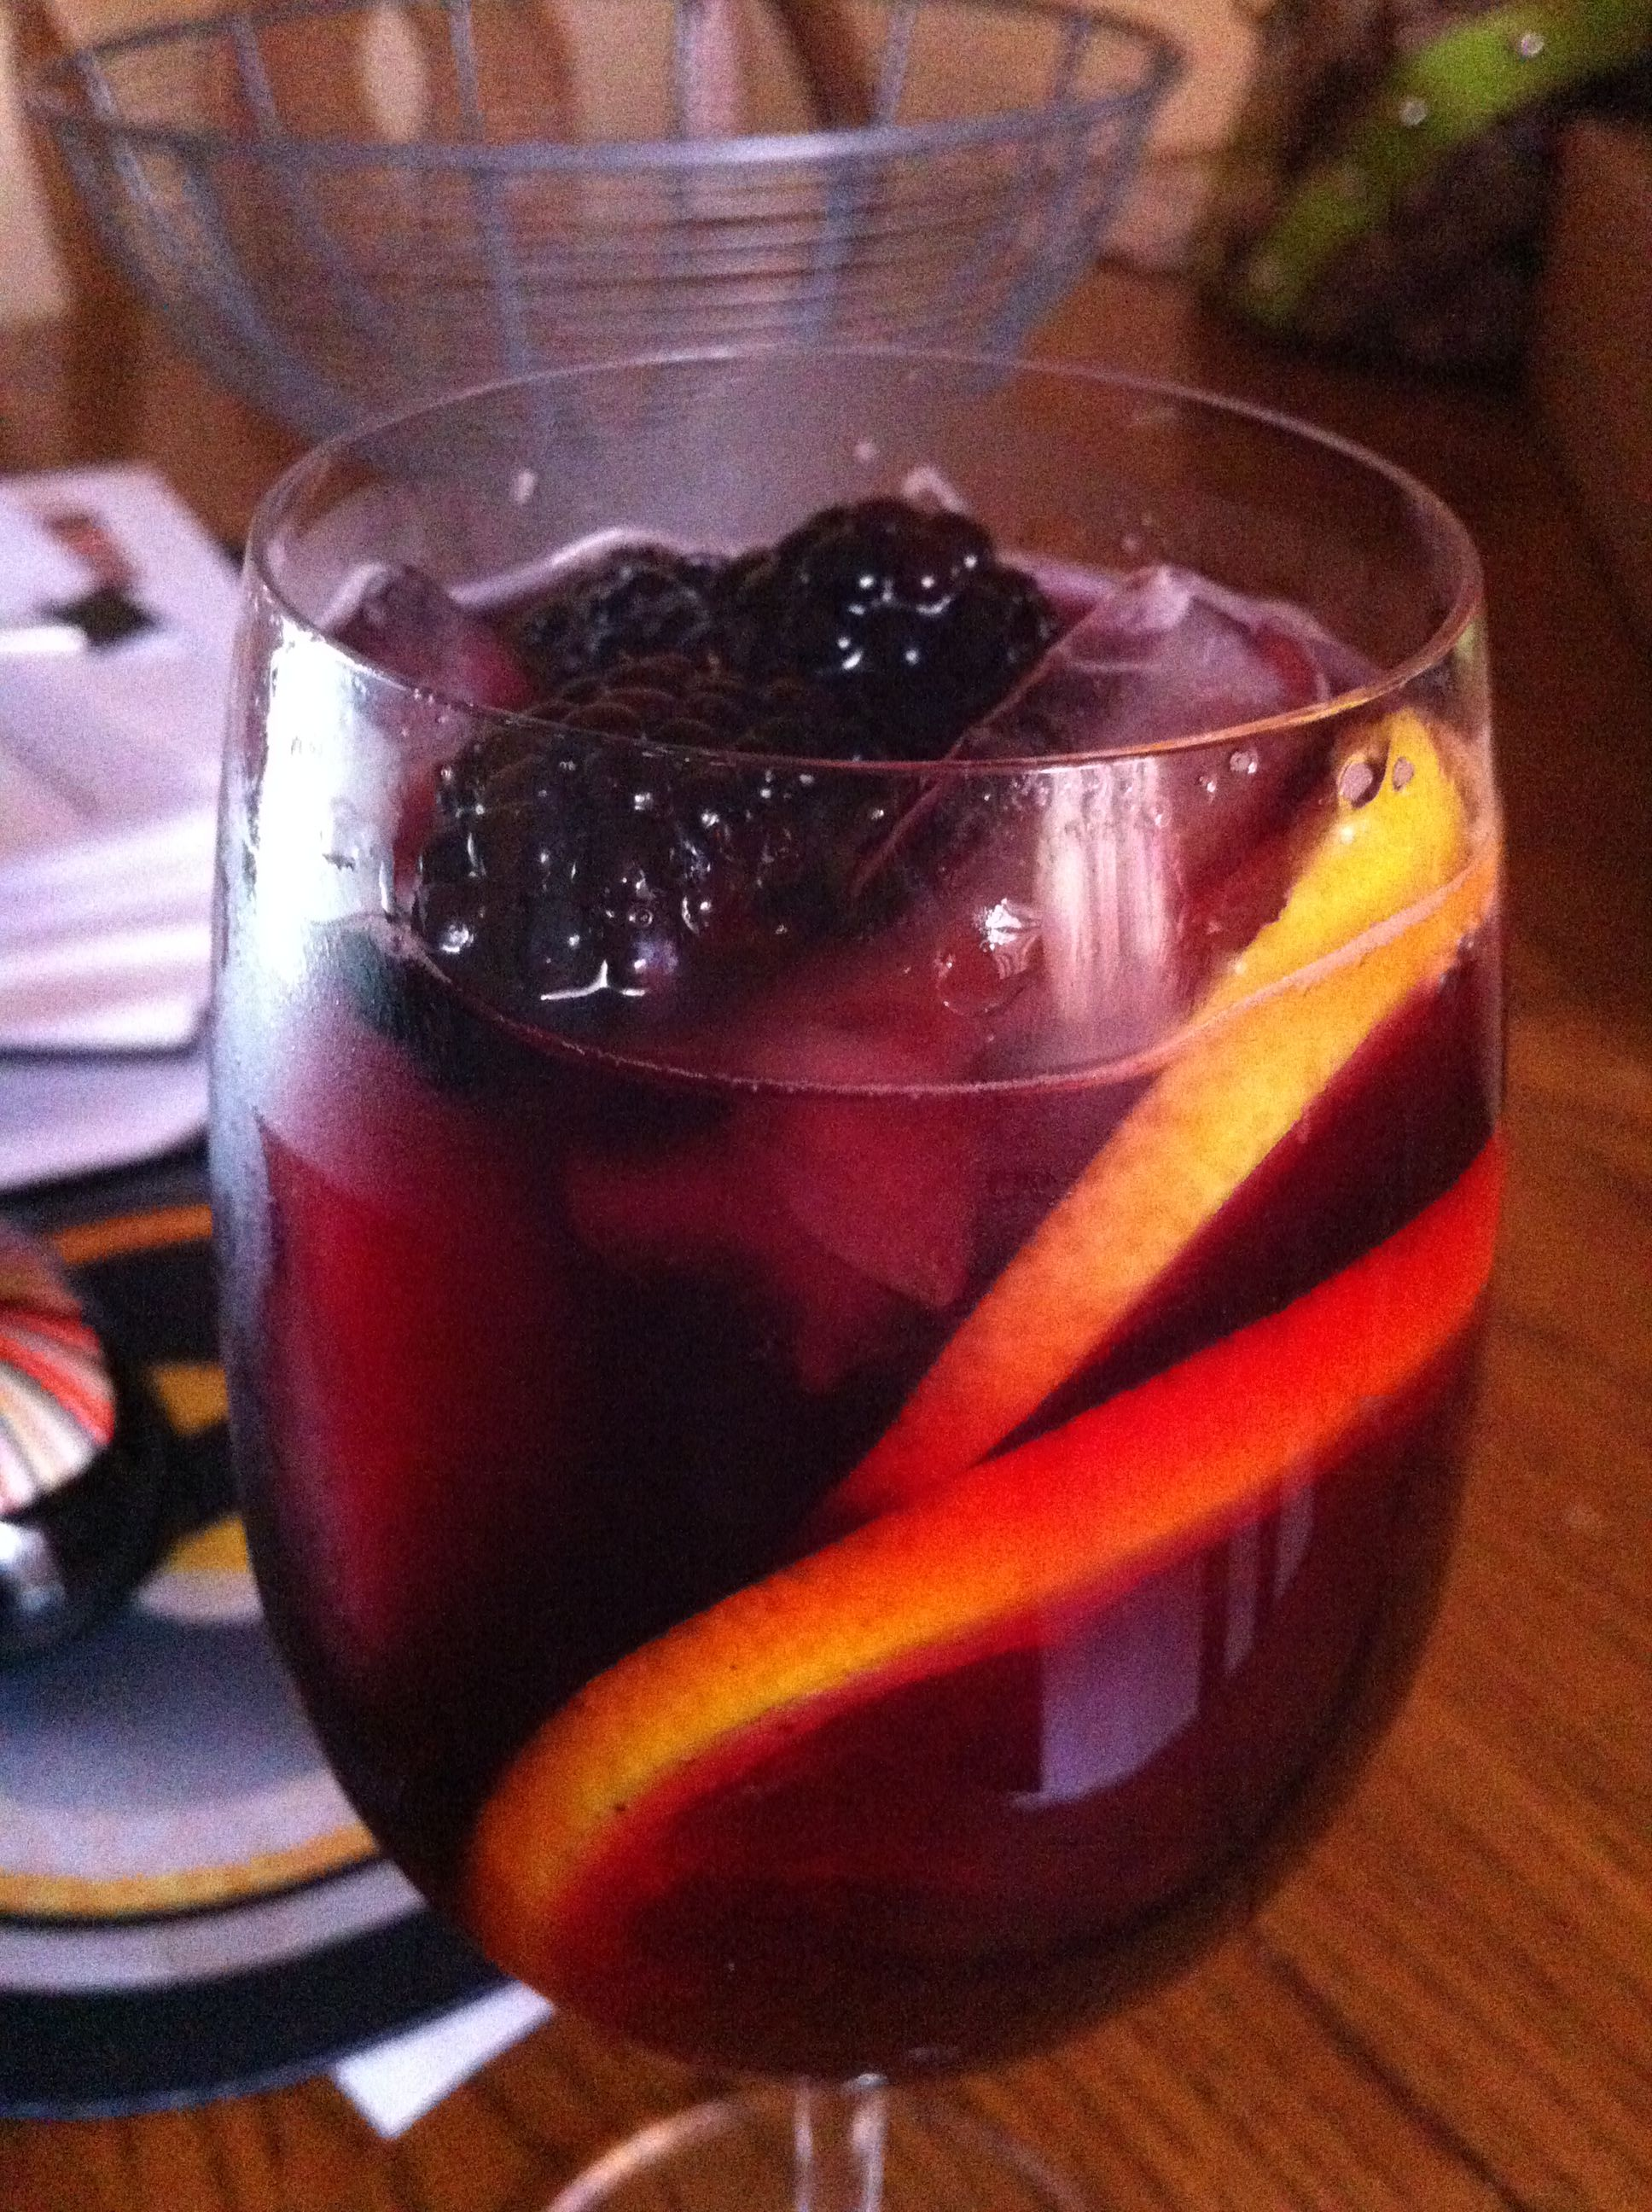 Blackberry Sangria Best Ever 1 1 2 Liters Bisanzio Or Other Sweet Italian Red Wine 14oz Cranberry Juice Not Blackberry Sangria Sangria Blackberry Syrup